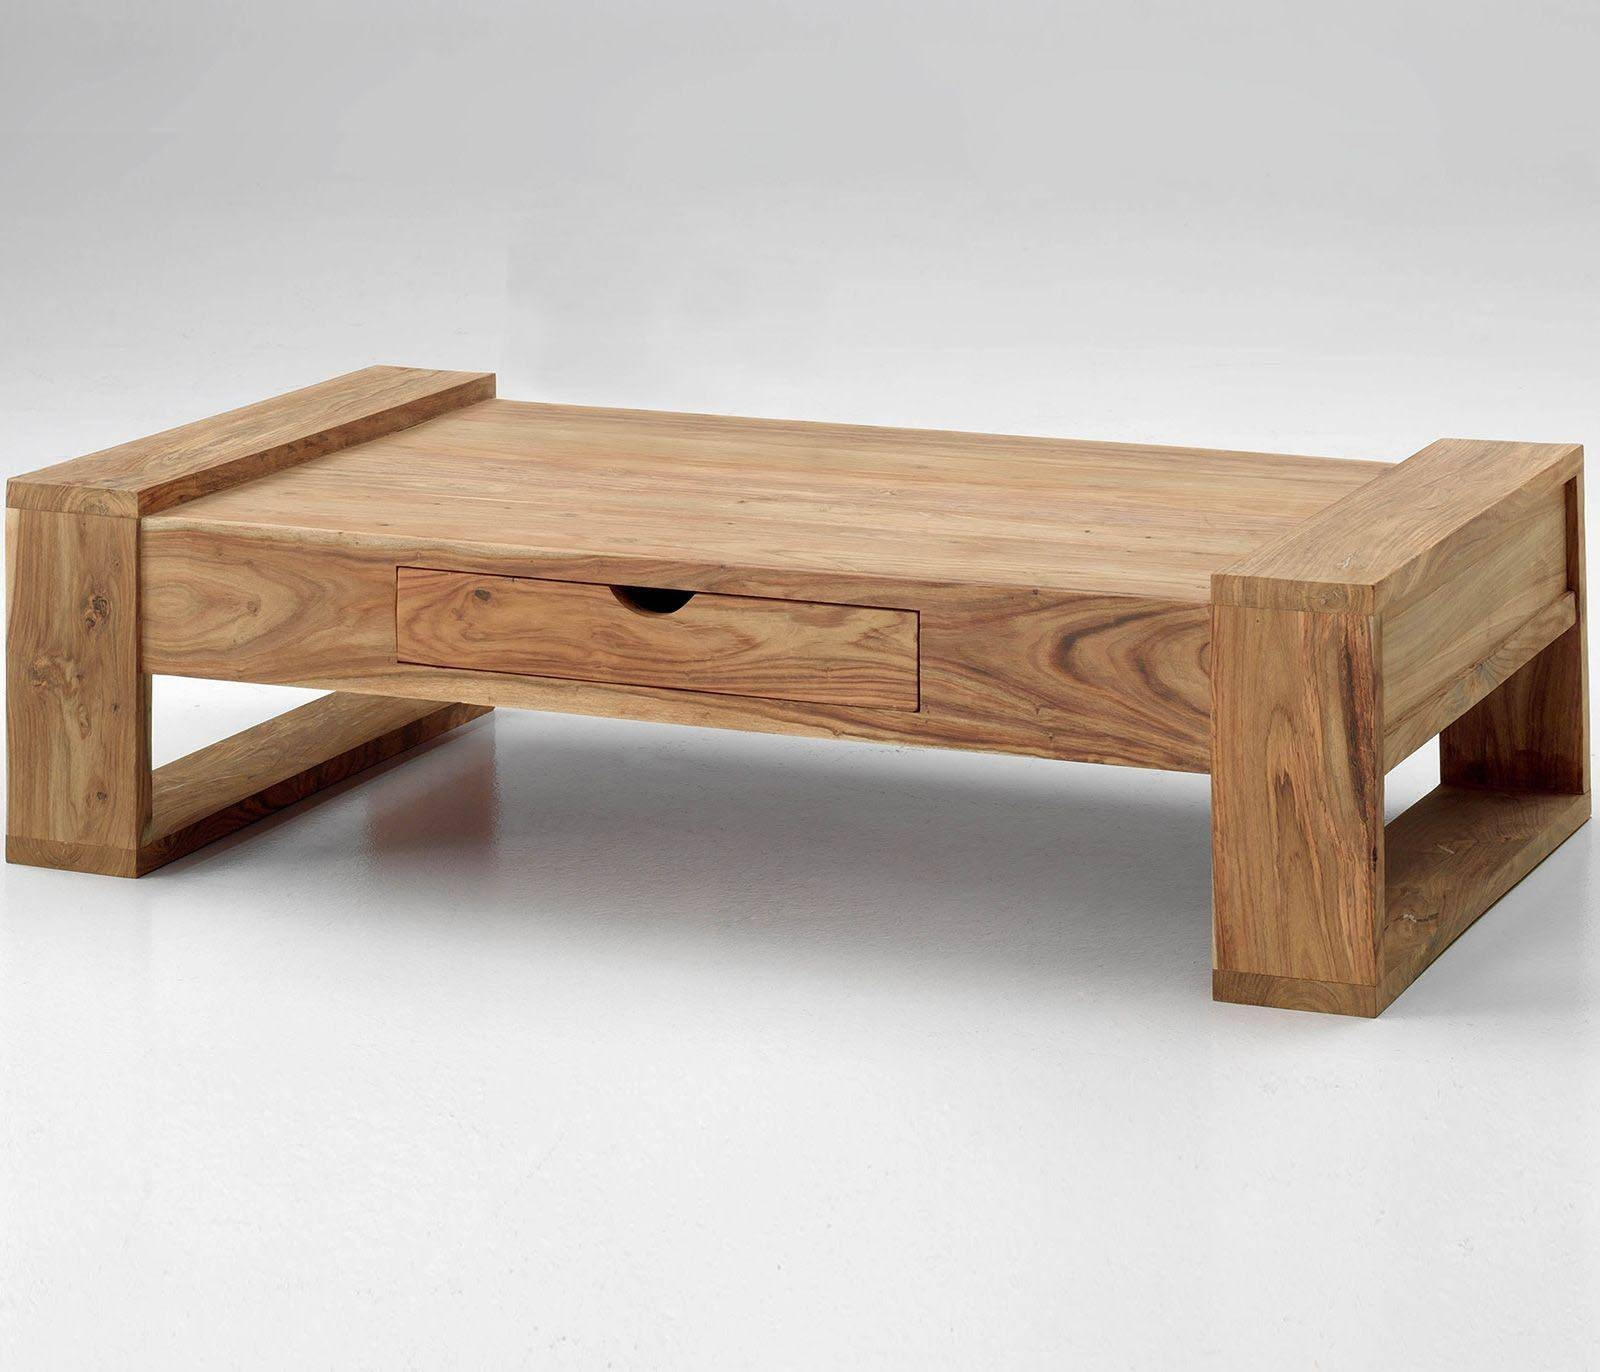 Low Coffee Table Wood | Coffee Table Design Ideas For Large Low Wood Coffee Tables (View 7 of 30)